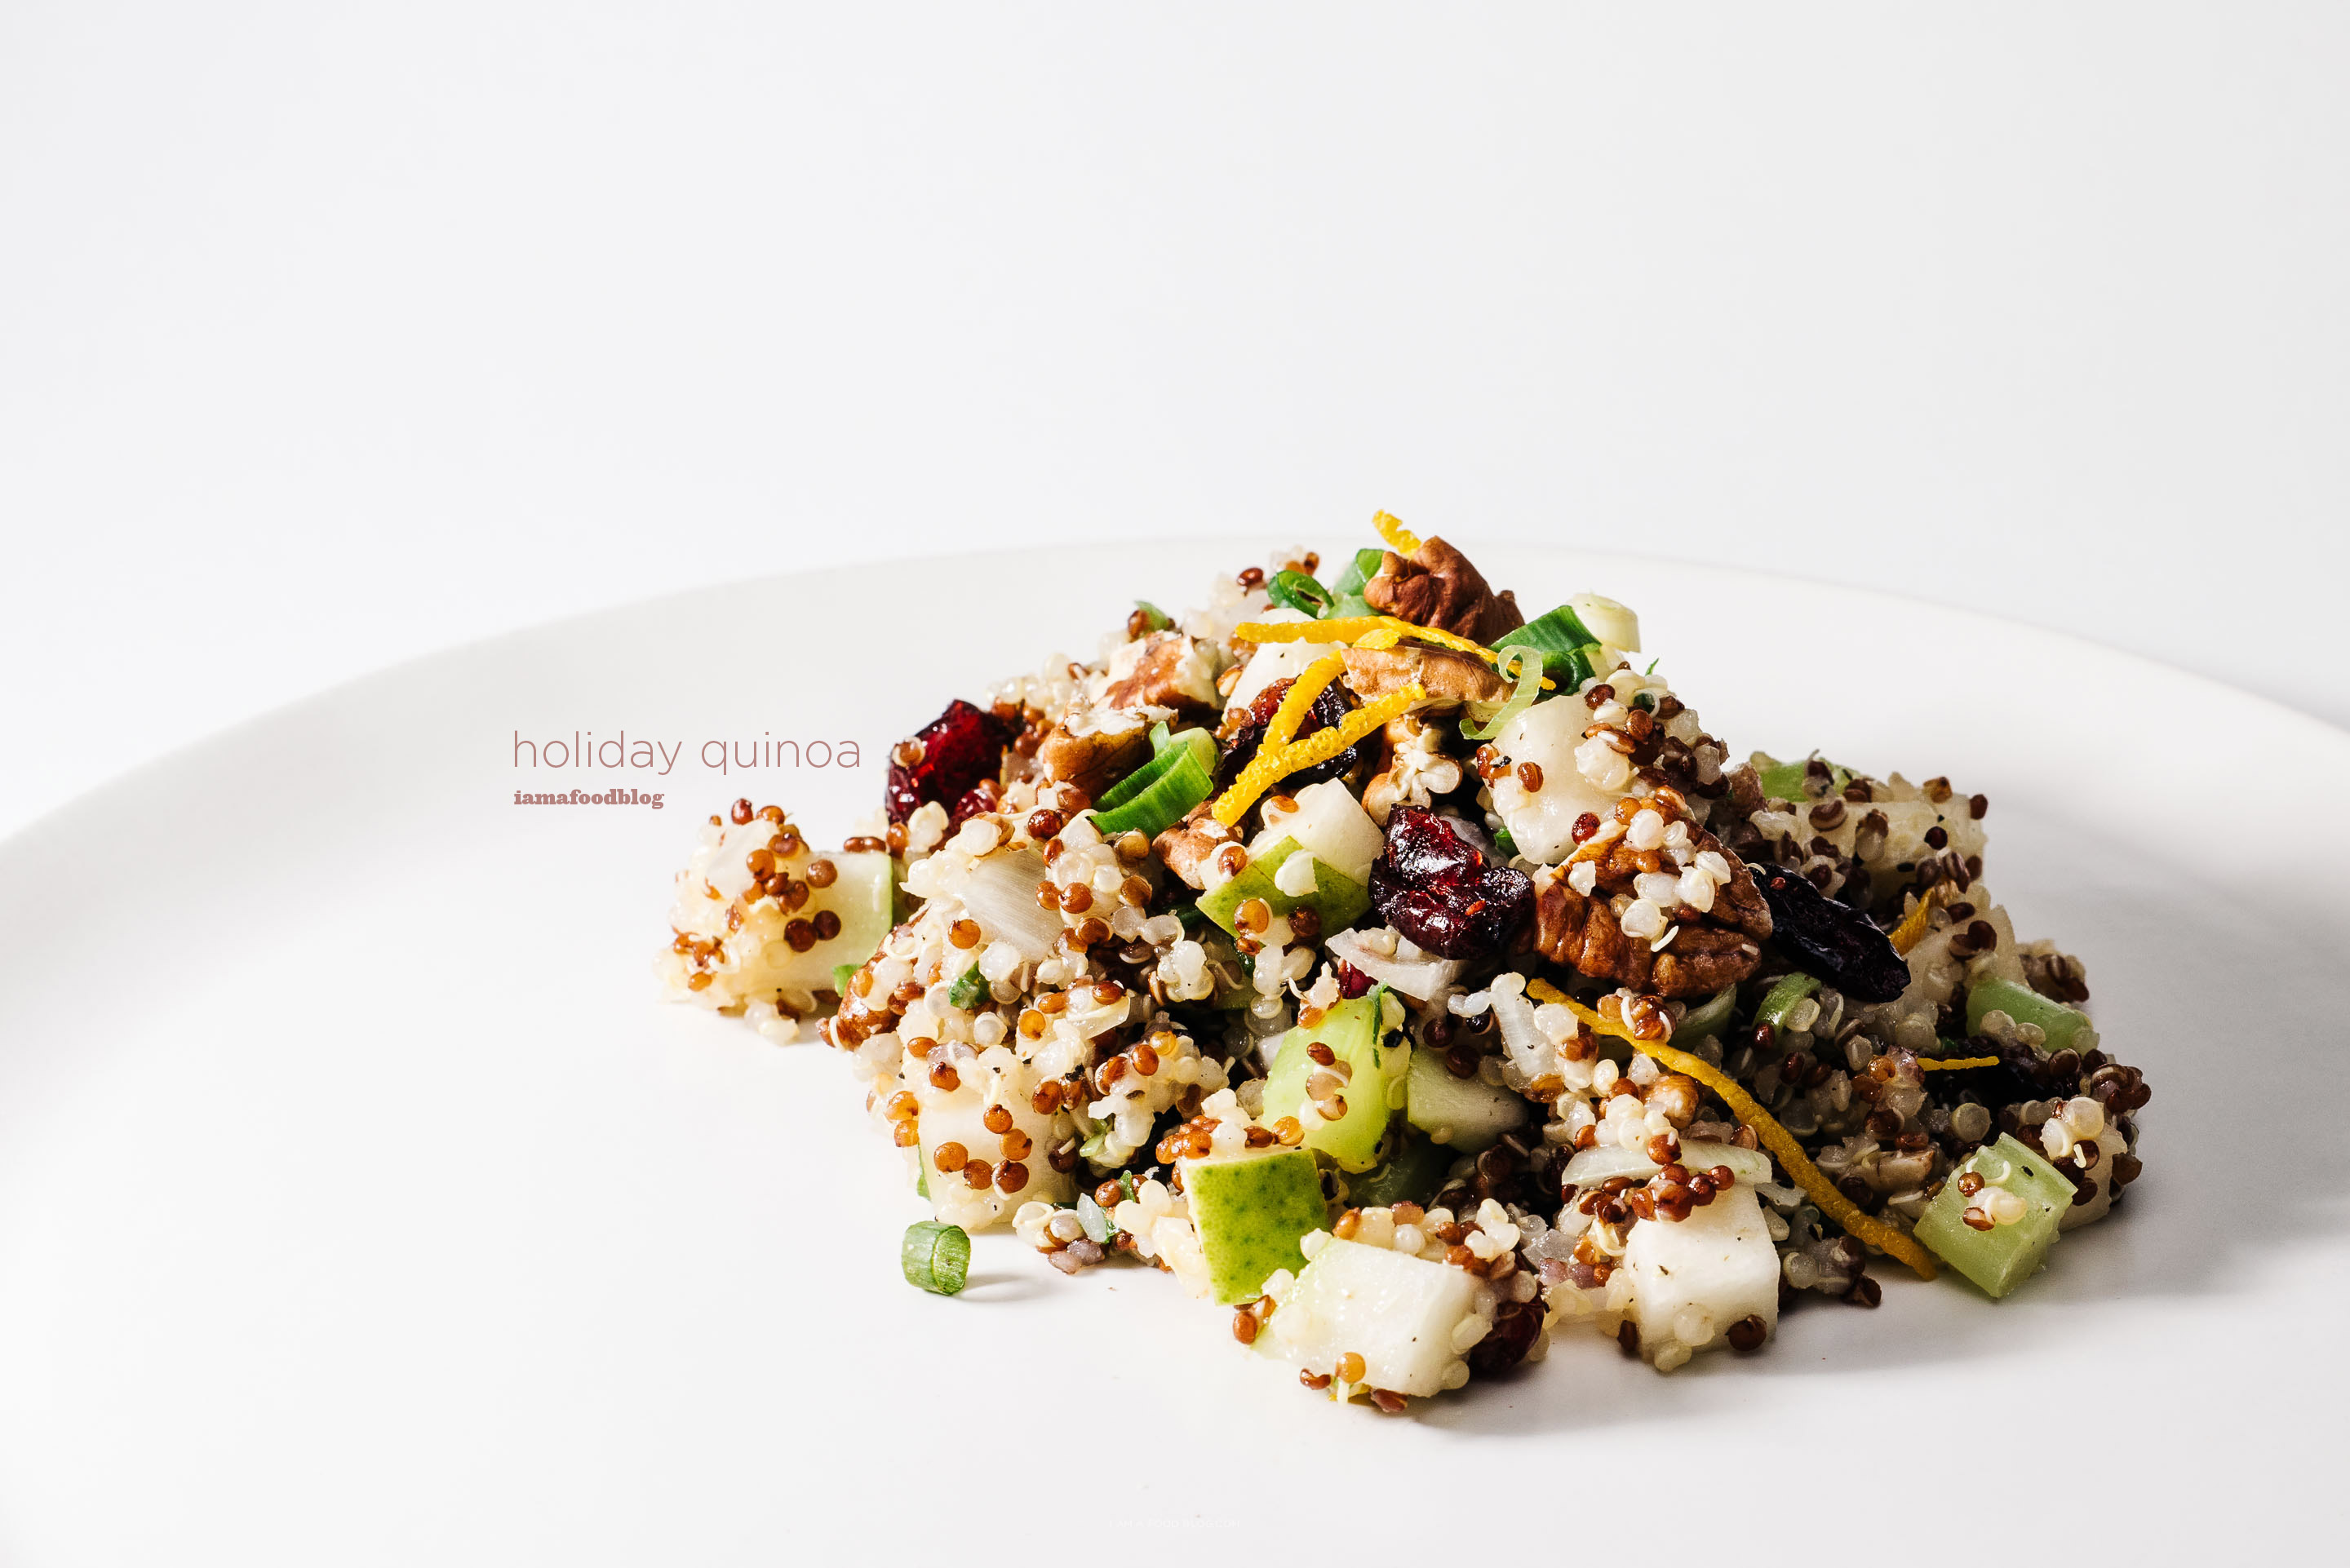 sweet side dish: christmas quinoa salad recipe - www.iamafoodblog.com